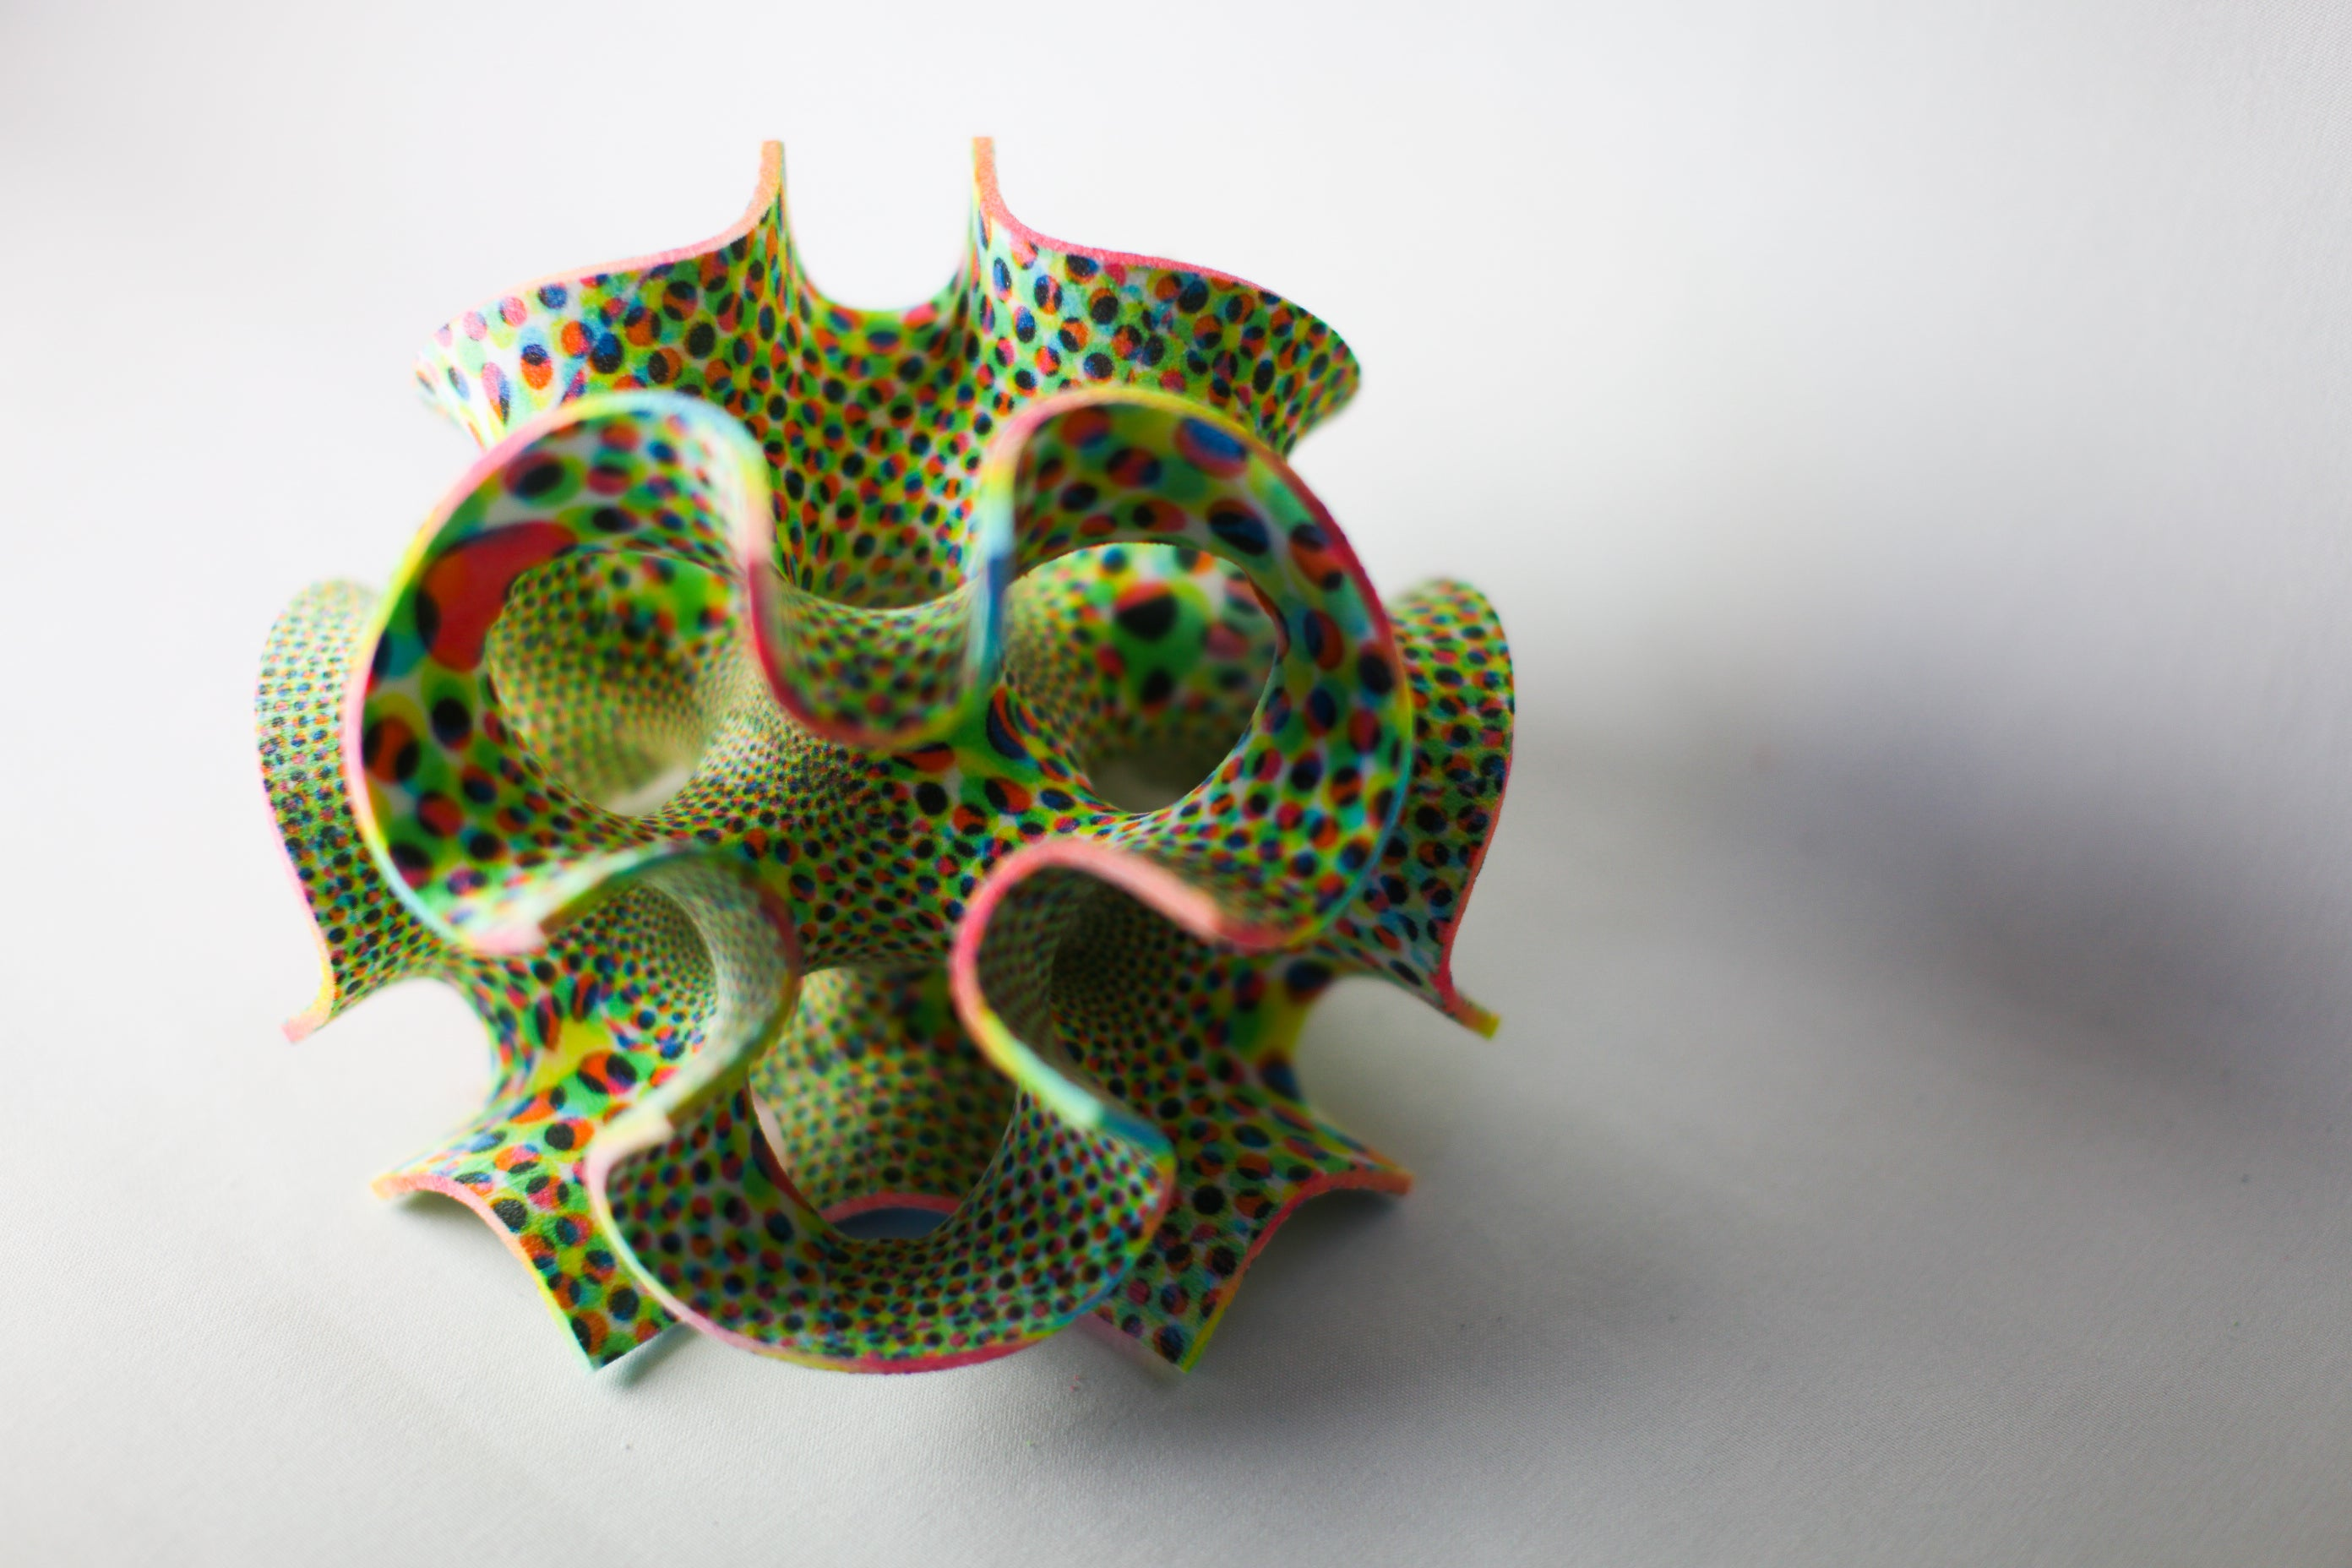 3-D Systems Printing